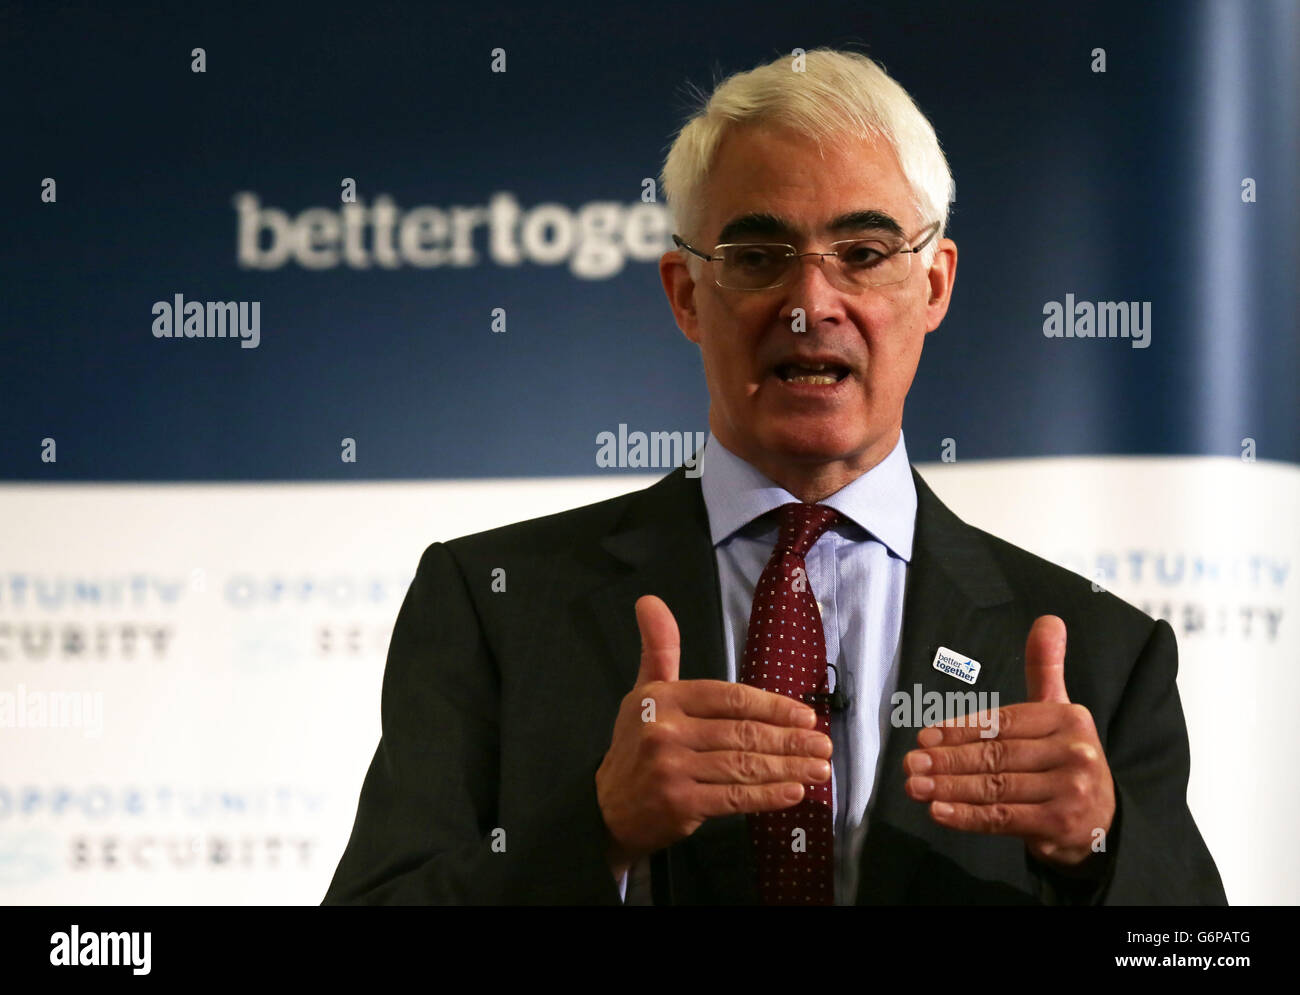 Darling speaks to young Scot voters - Stock Image